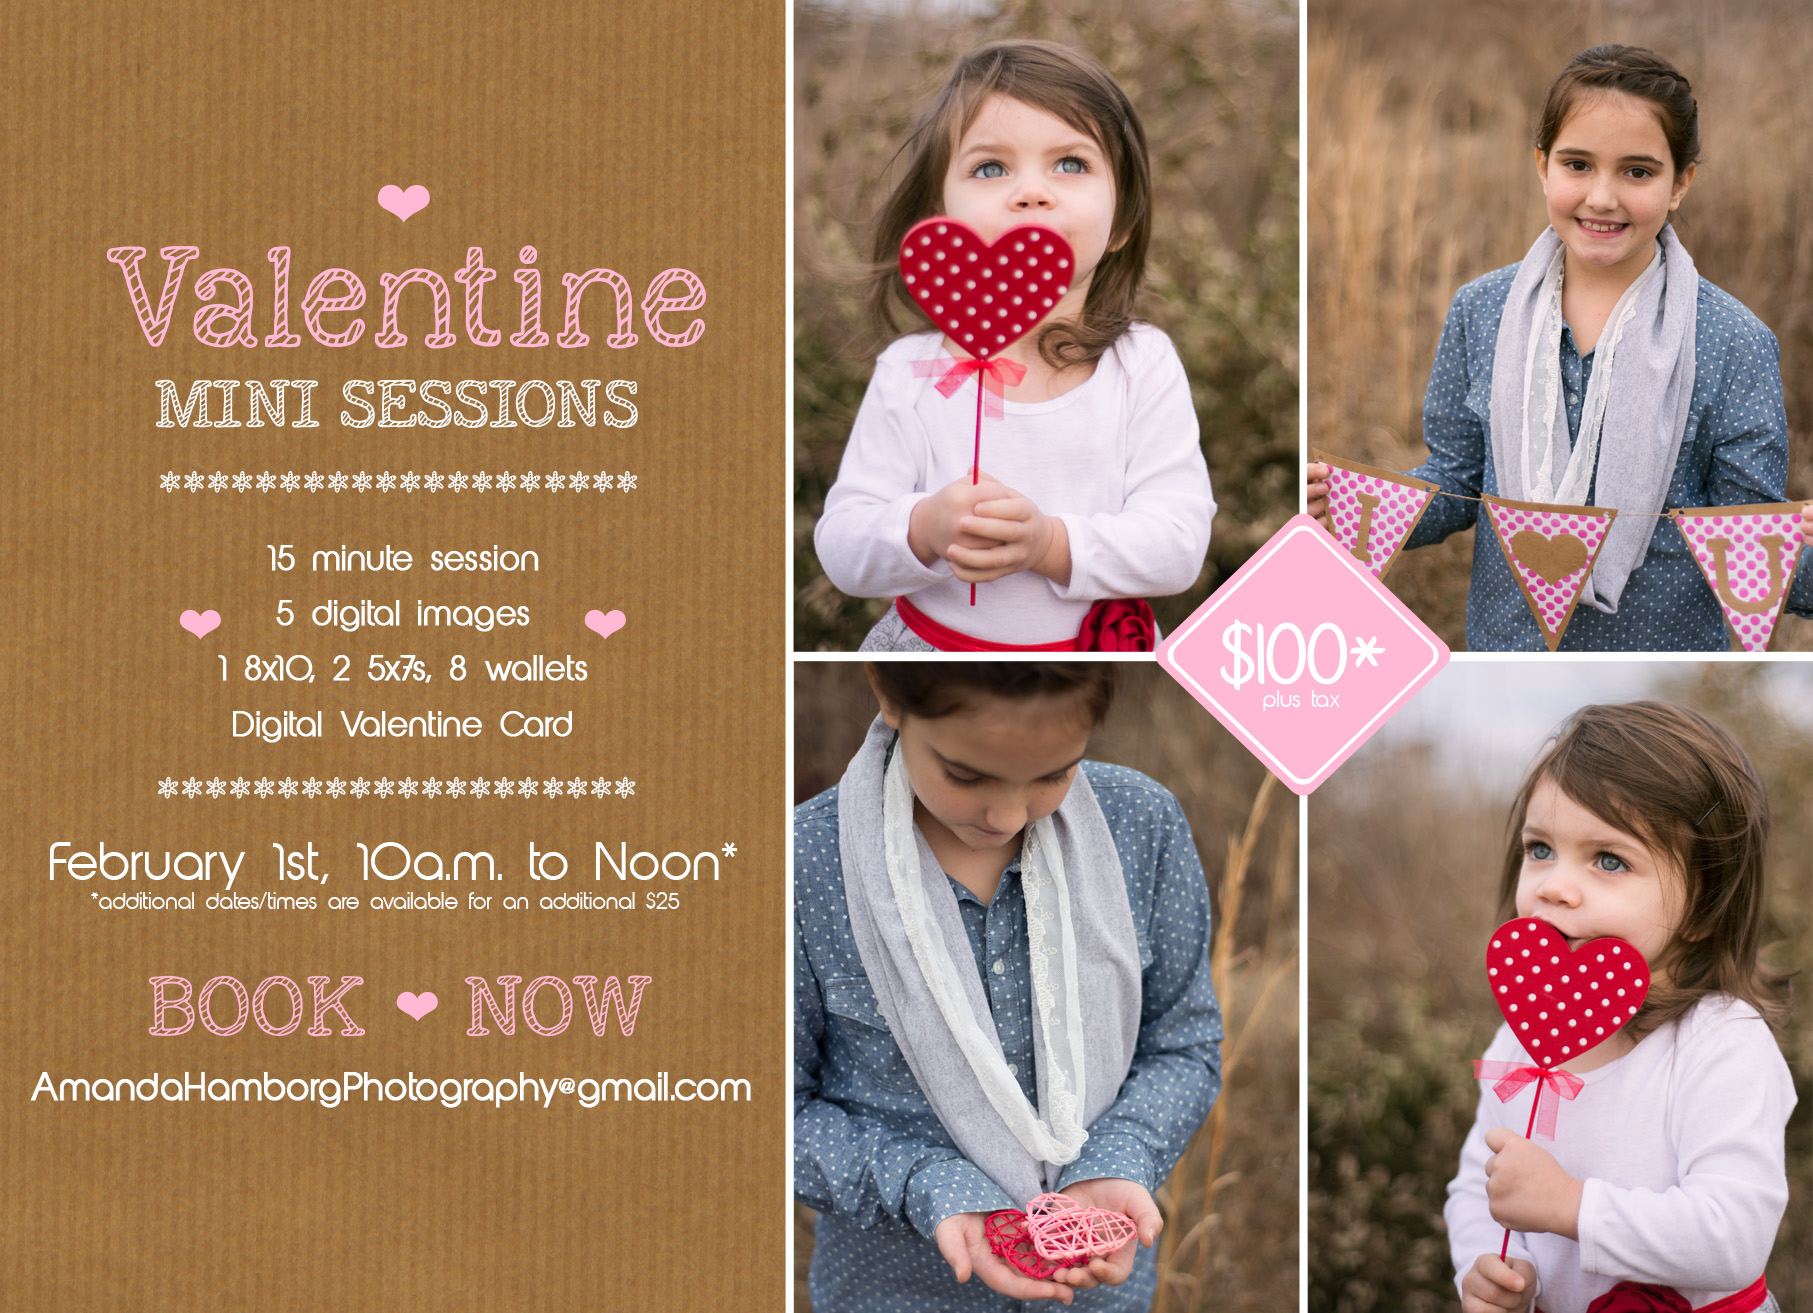 Valentine Mini Sessions.jpg